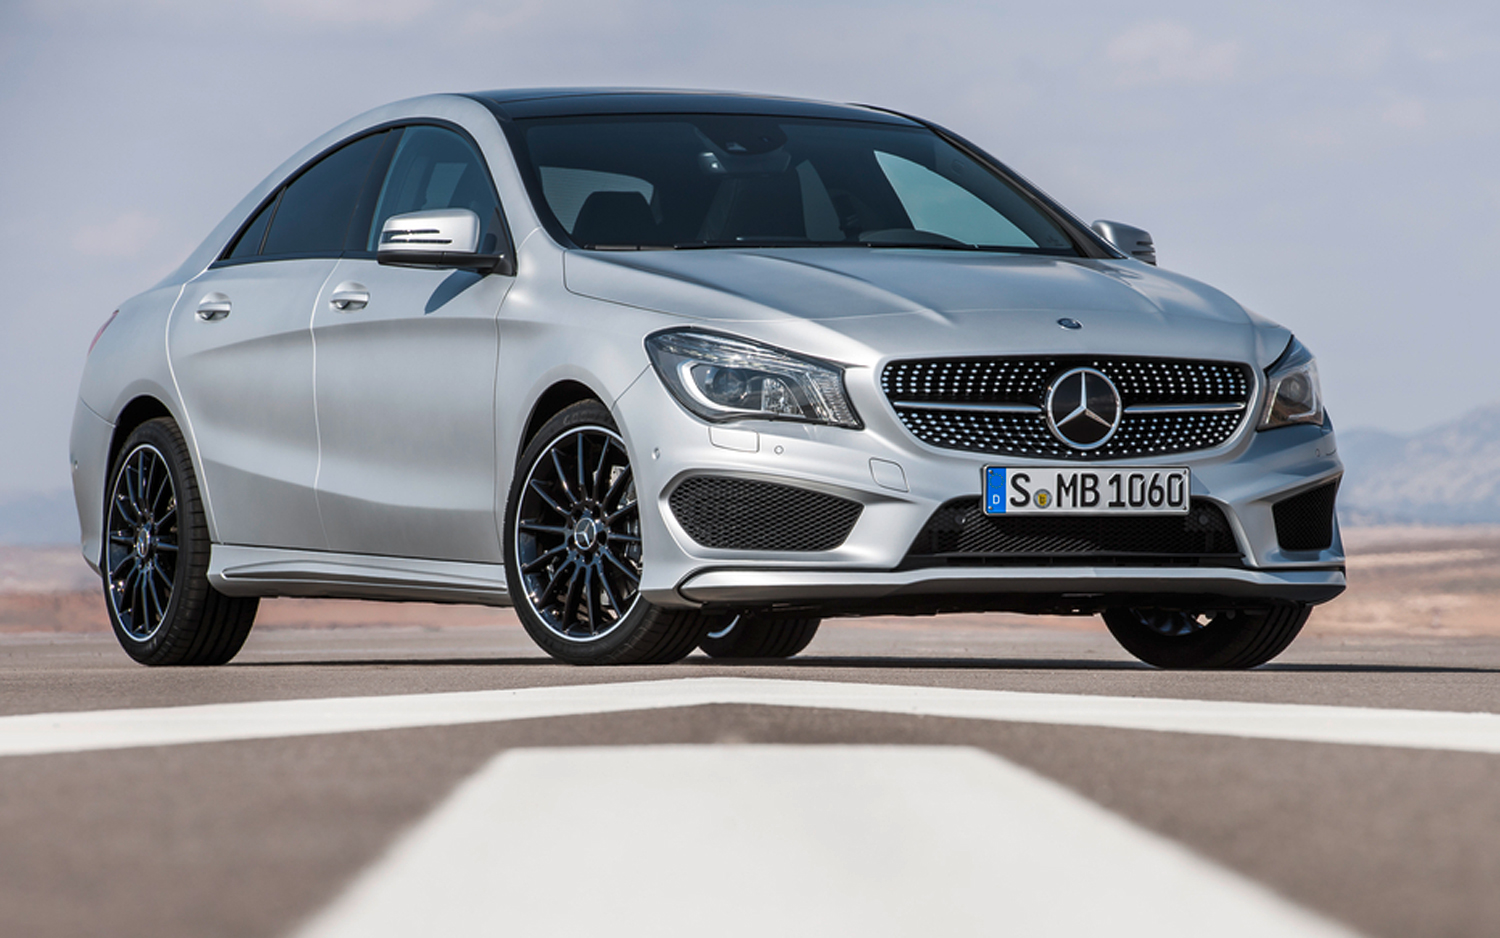 2014 Mercedes Benz CLAu0027s Base Price Of $30,825 Revealed In Super Bowl Ad